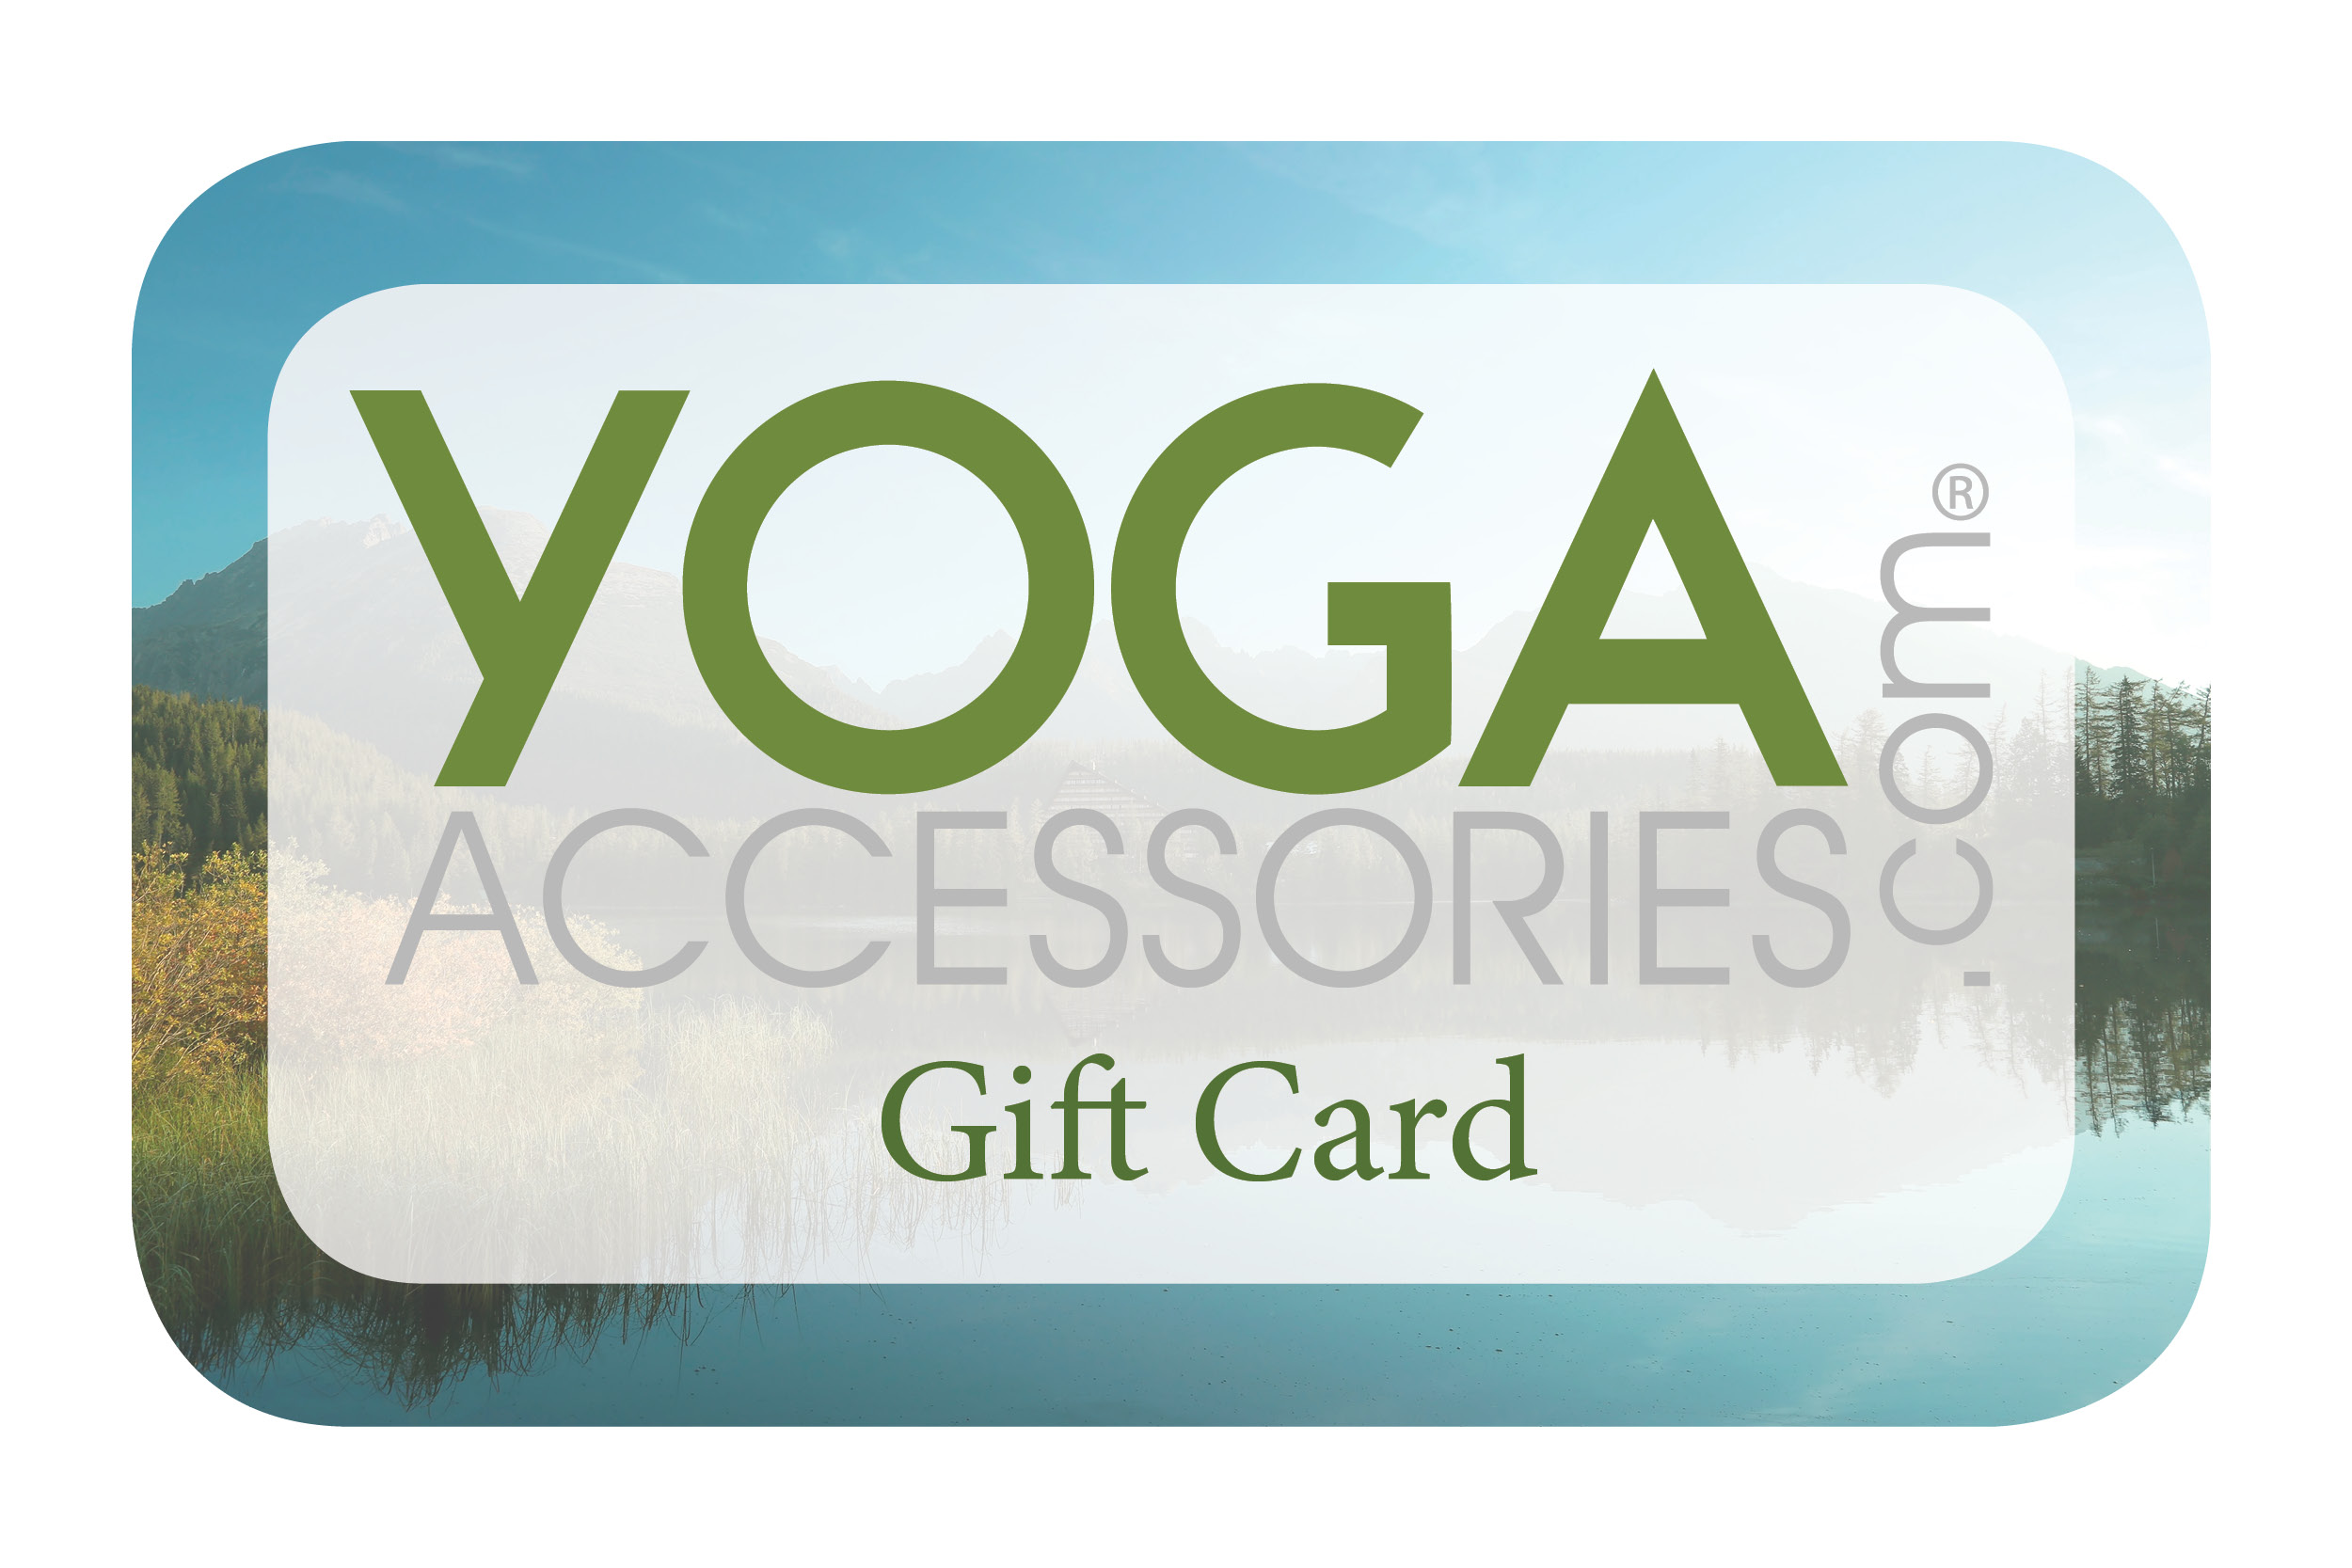 Yoga accessories online coupons